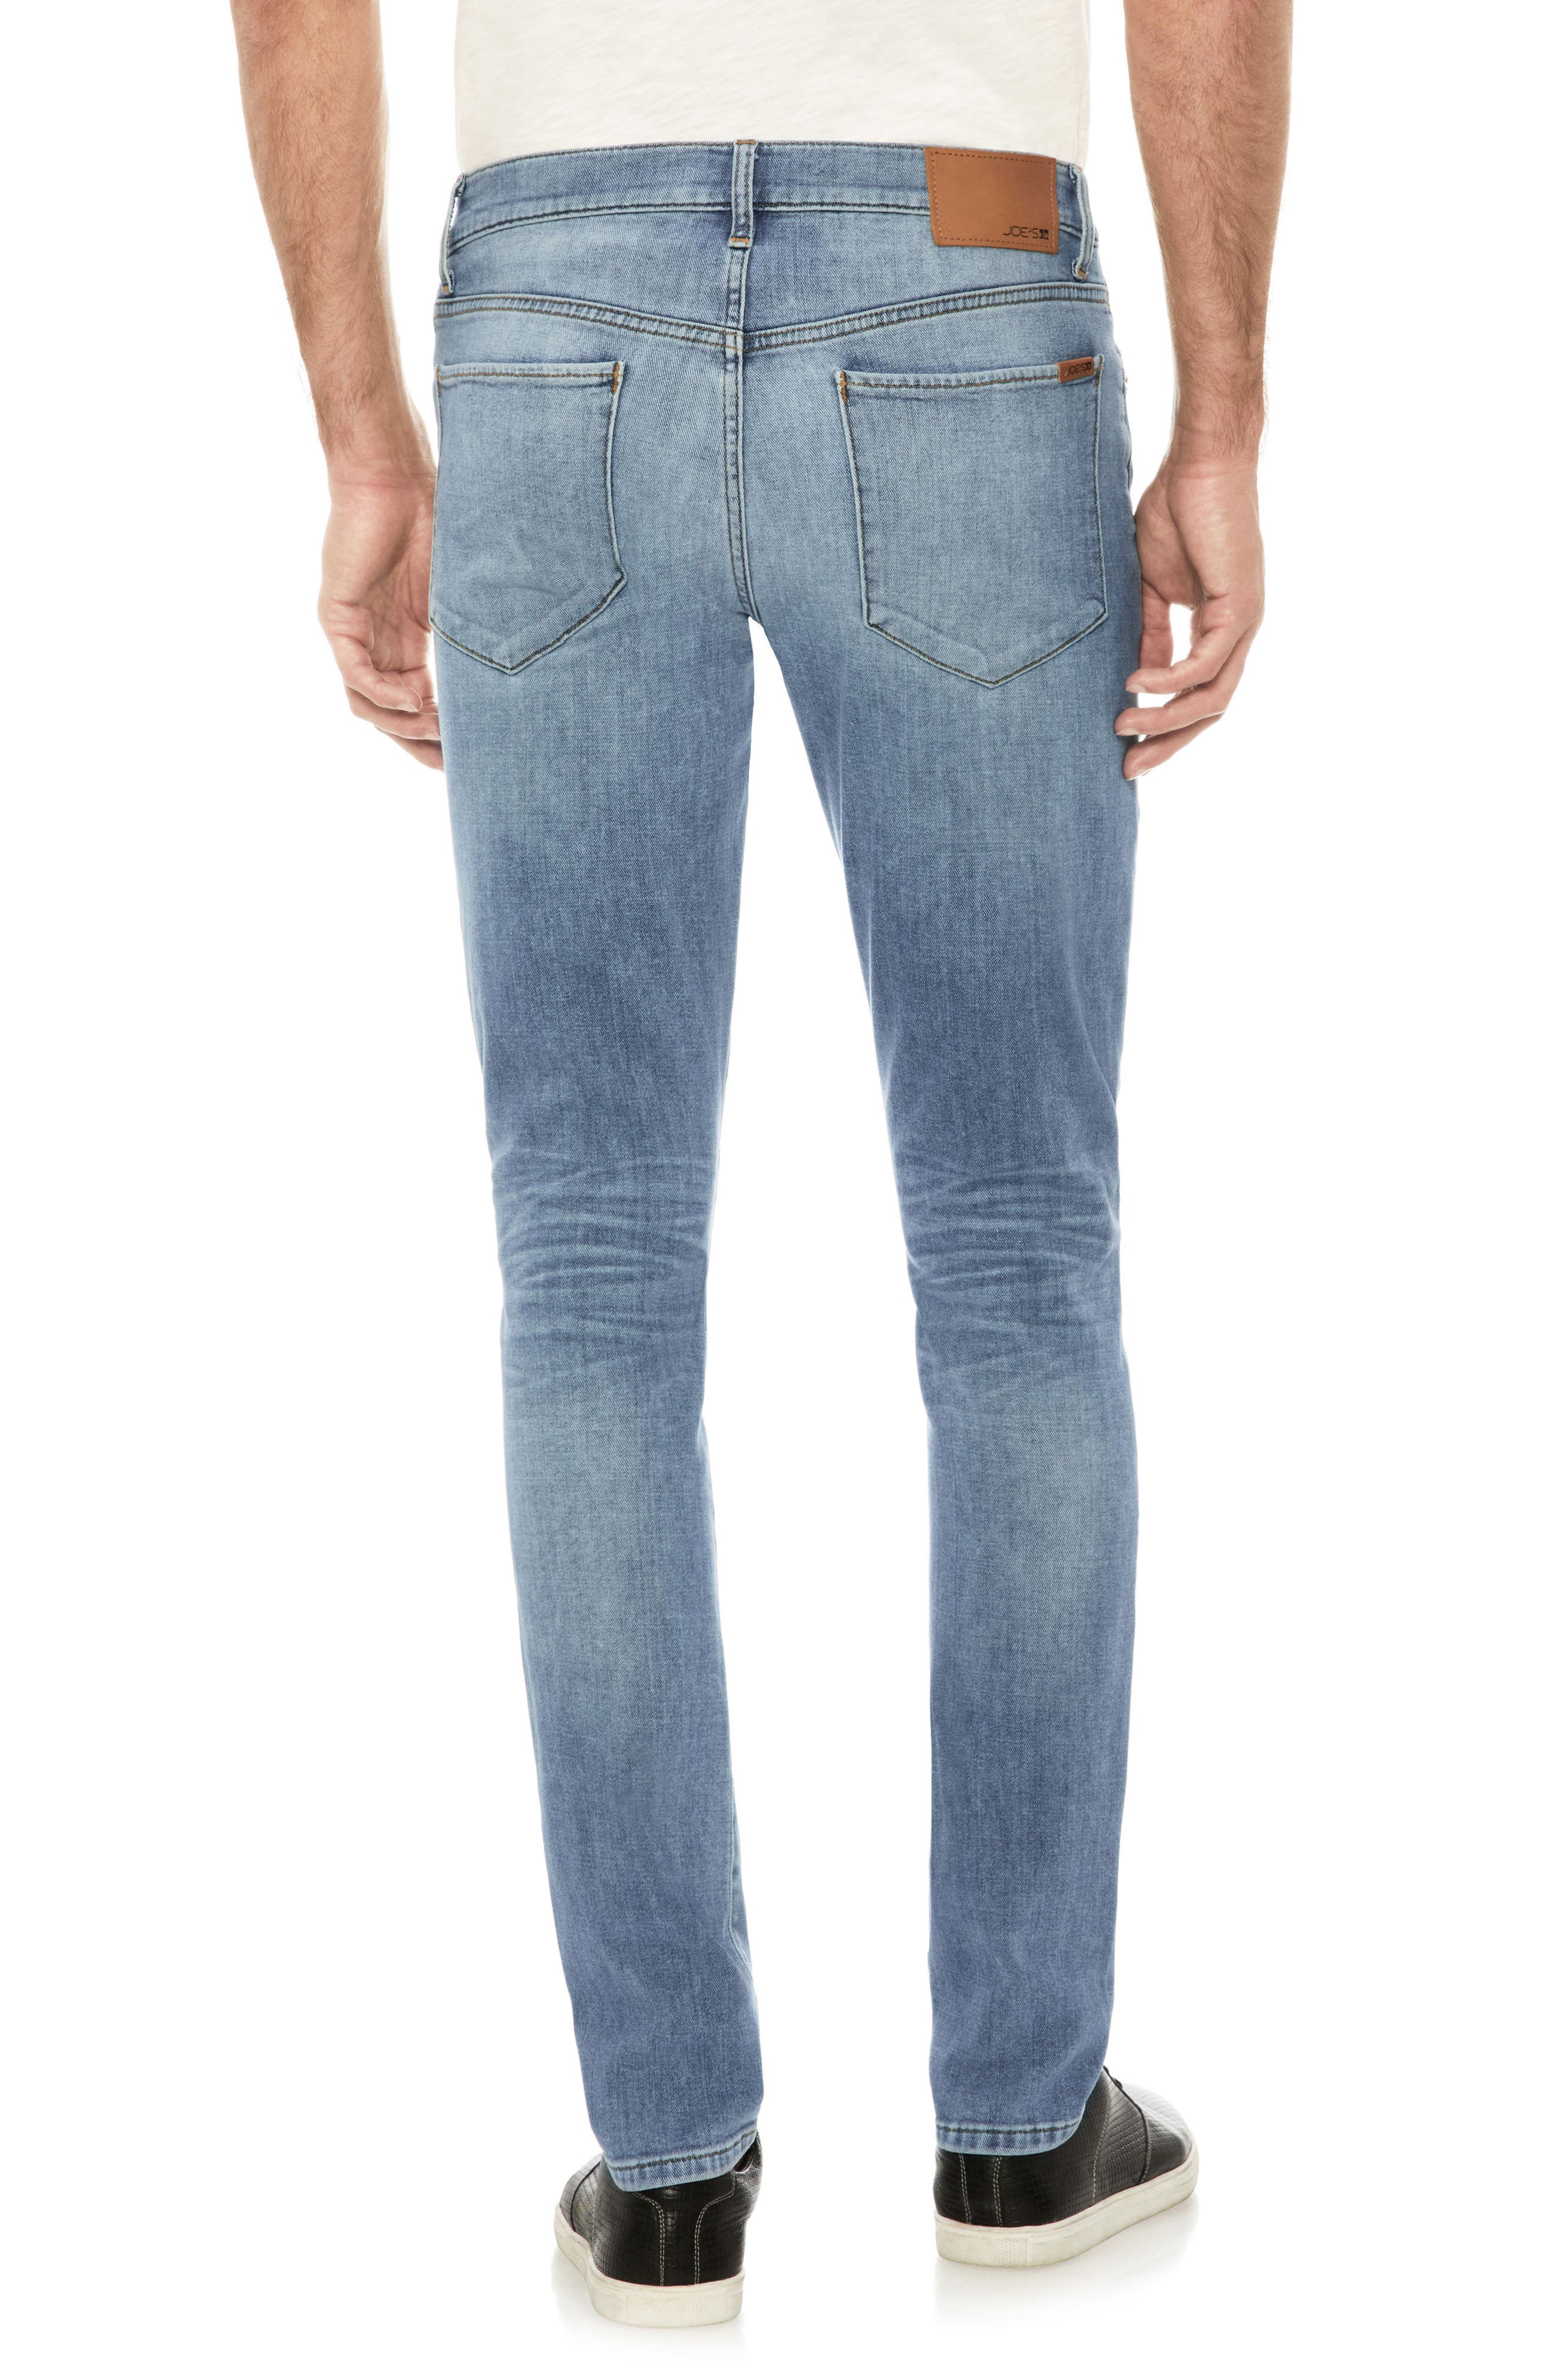 Legend Skinny Fit Jeans,                             Alternate thumbnail 2, color,                             Avery